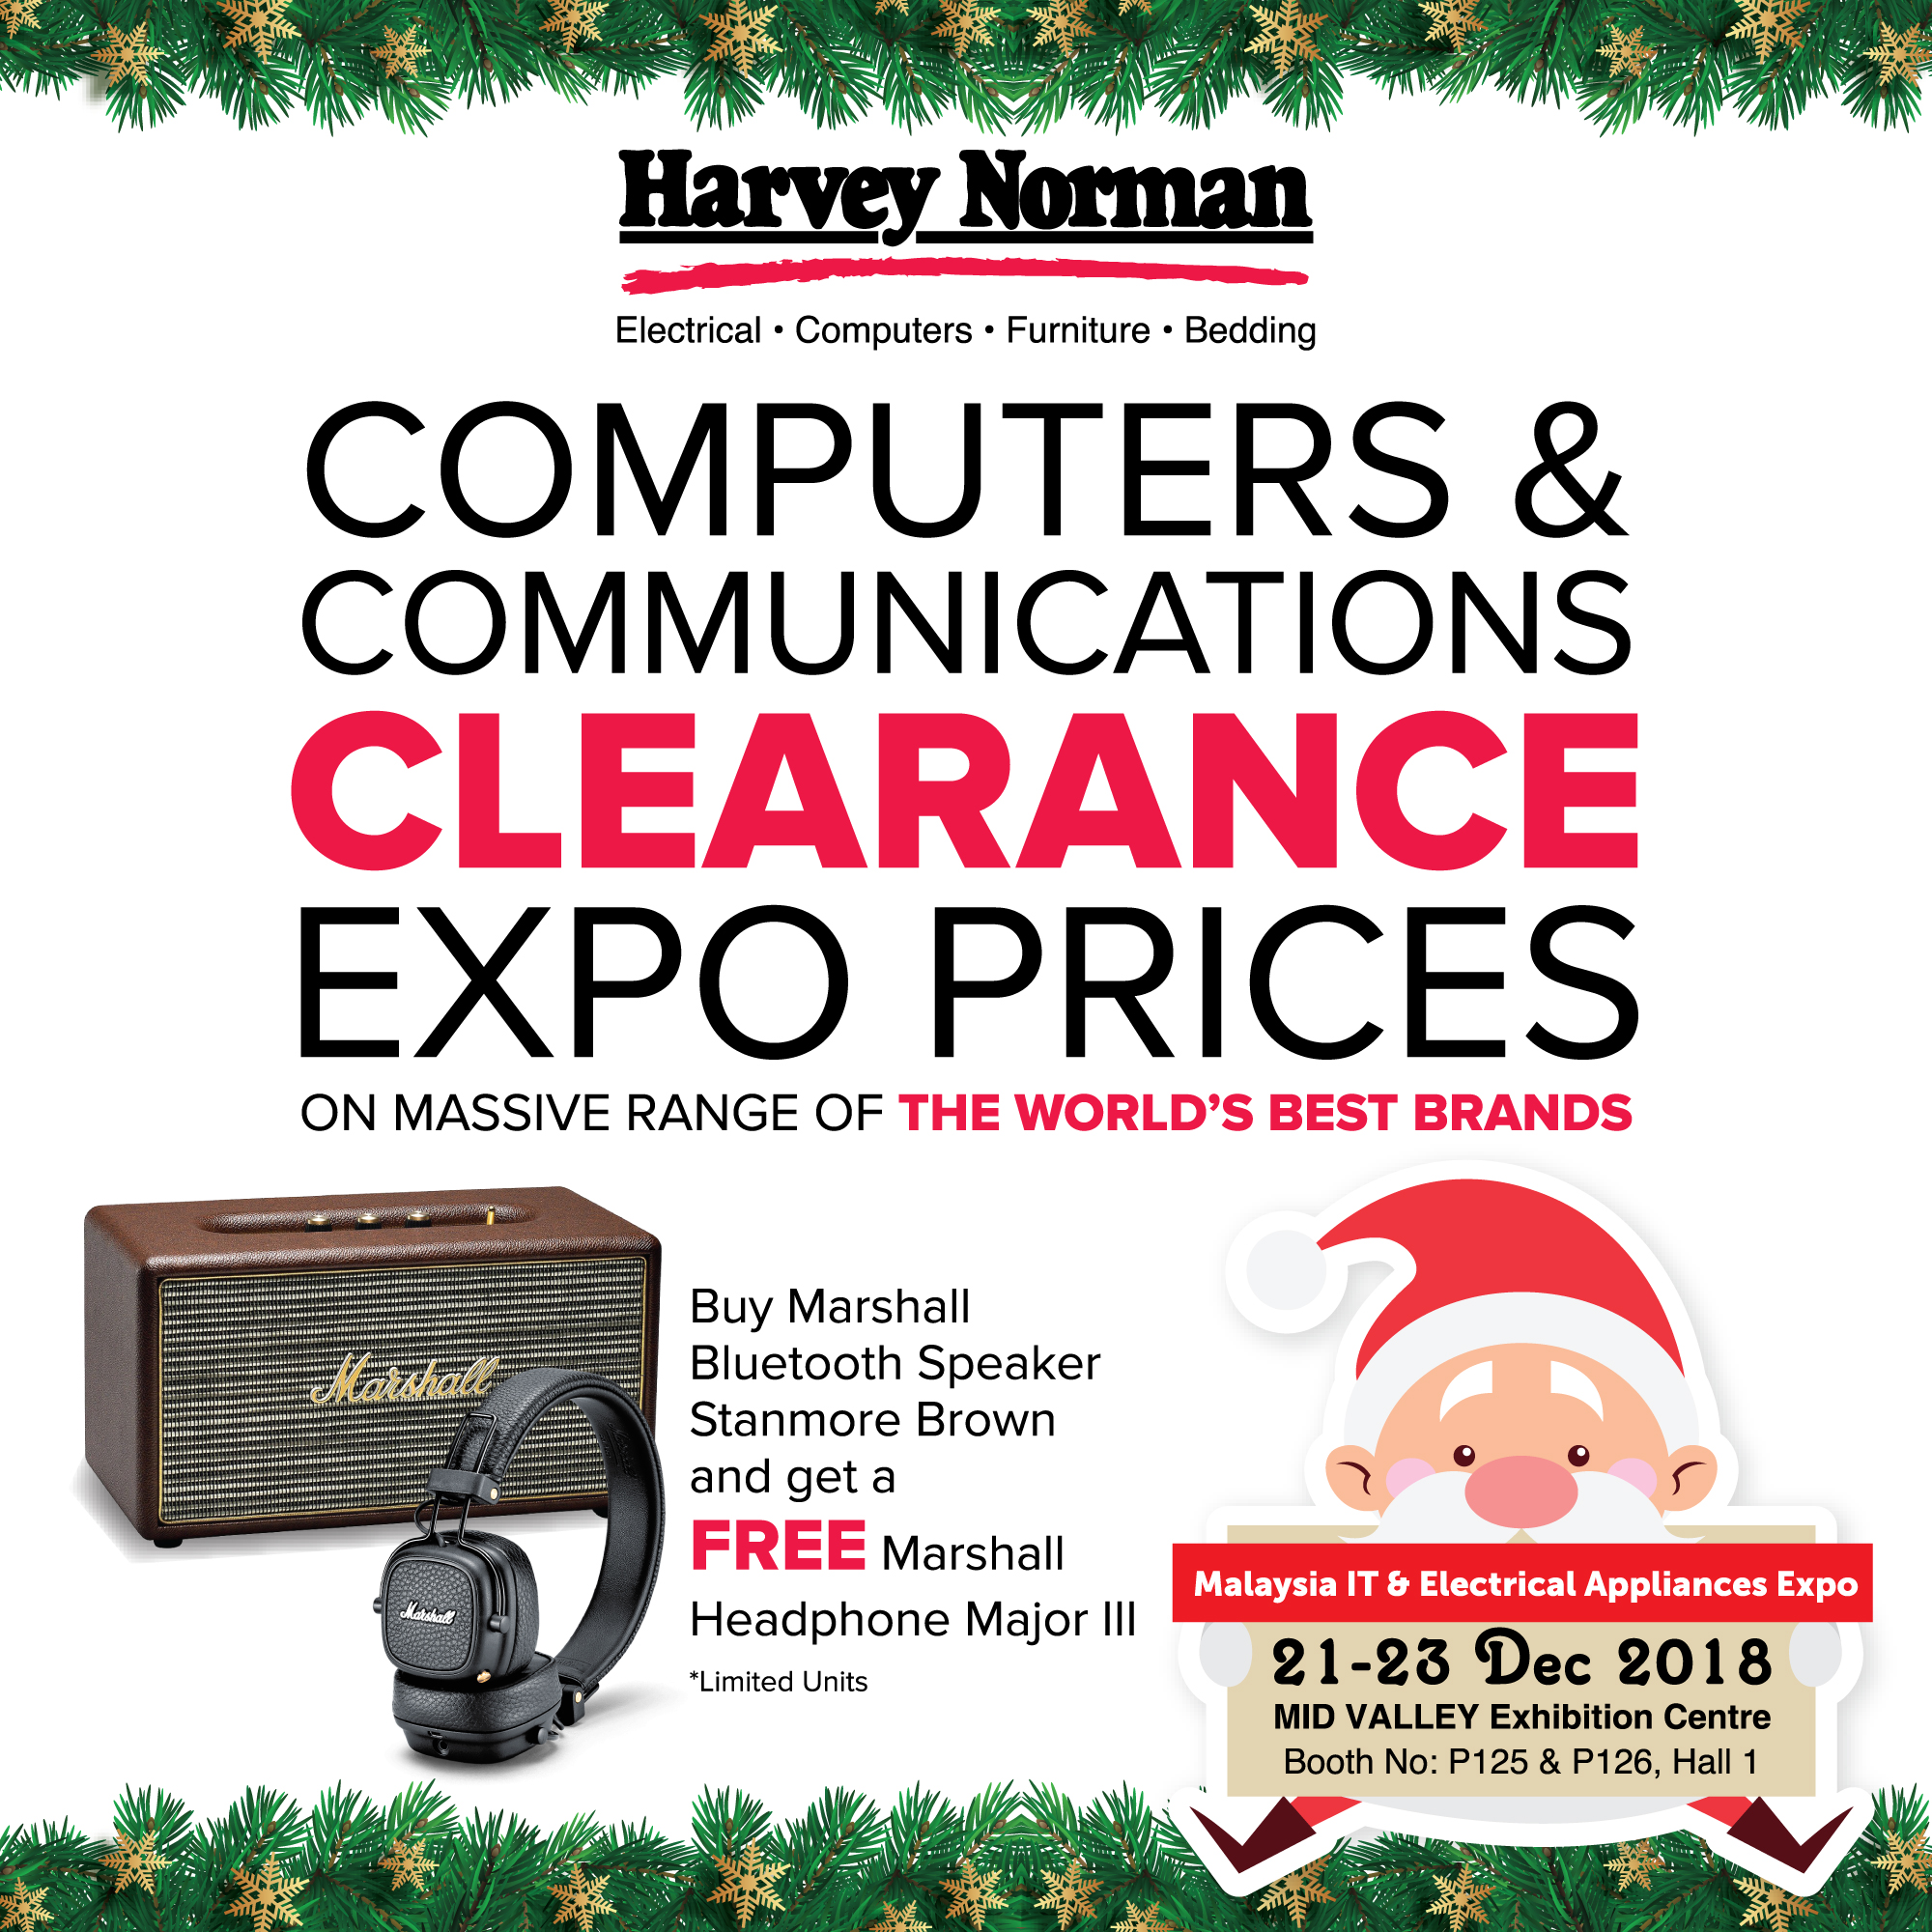 HARVEY NORMAN PROMOTION @ MALAYSIA IT & ELECTRICAL APPLIANCES EXPO II KL